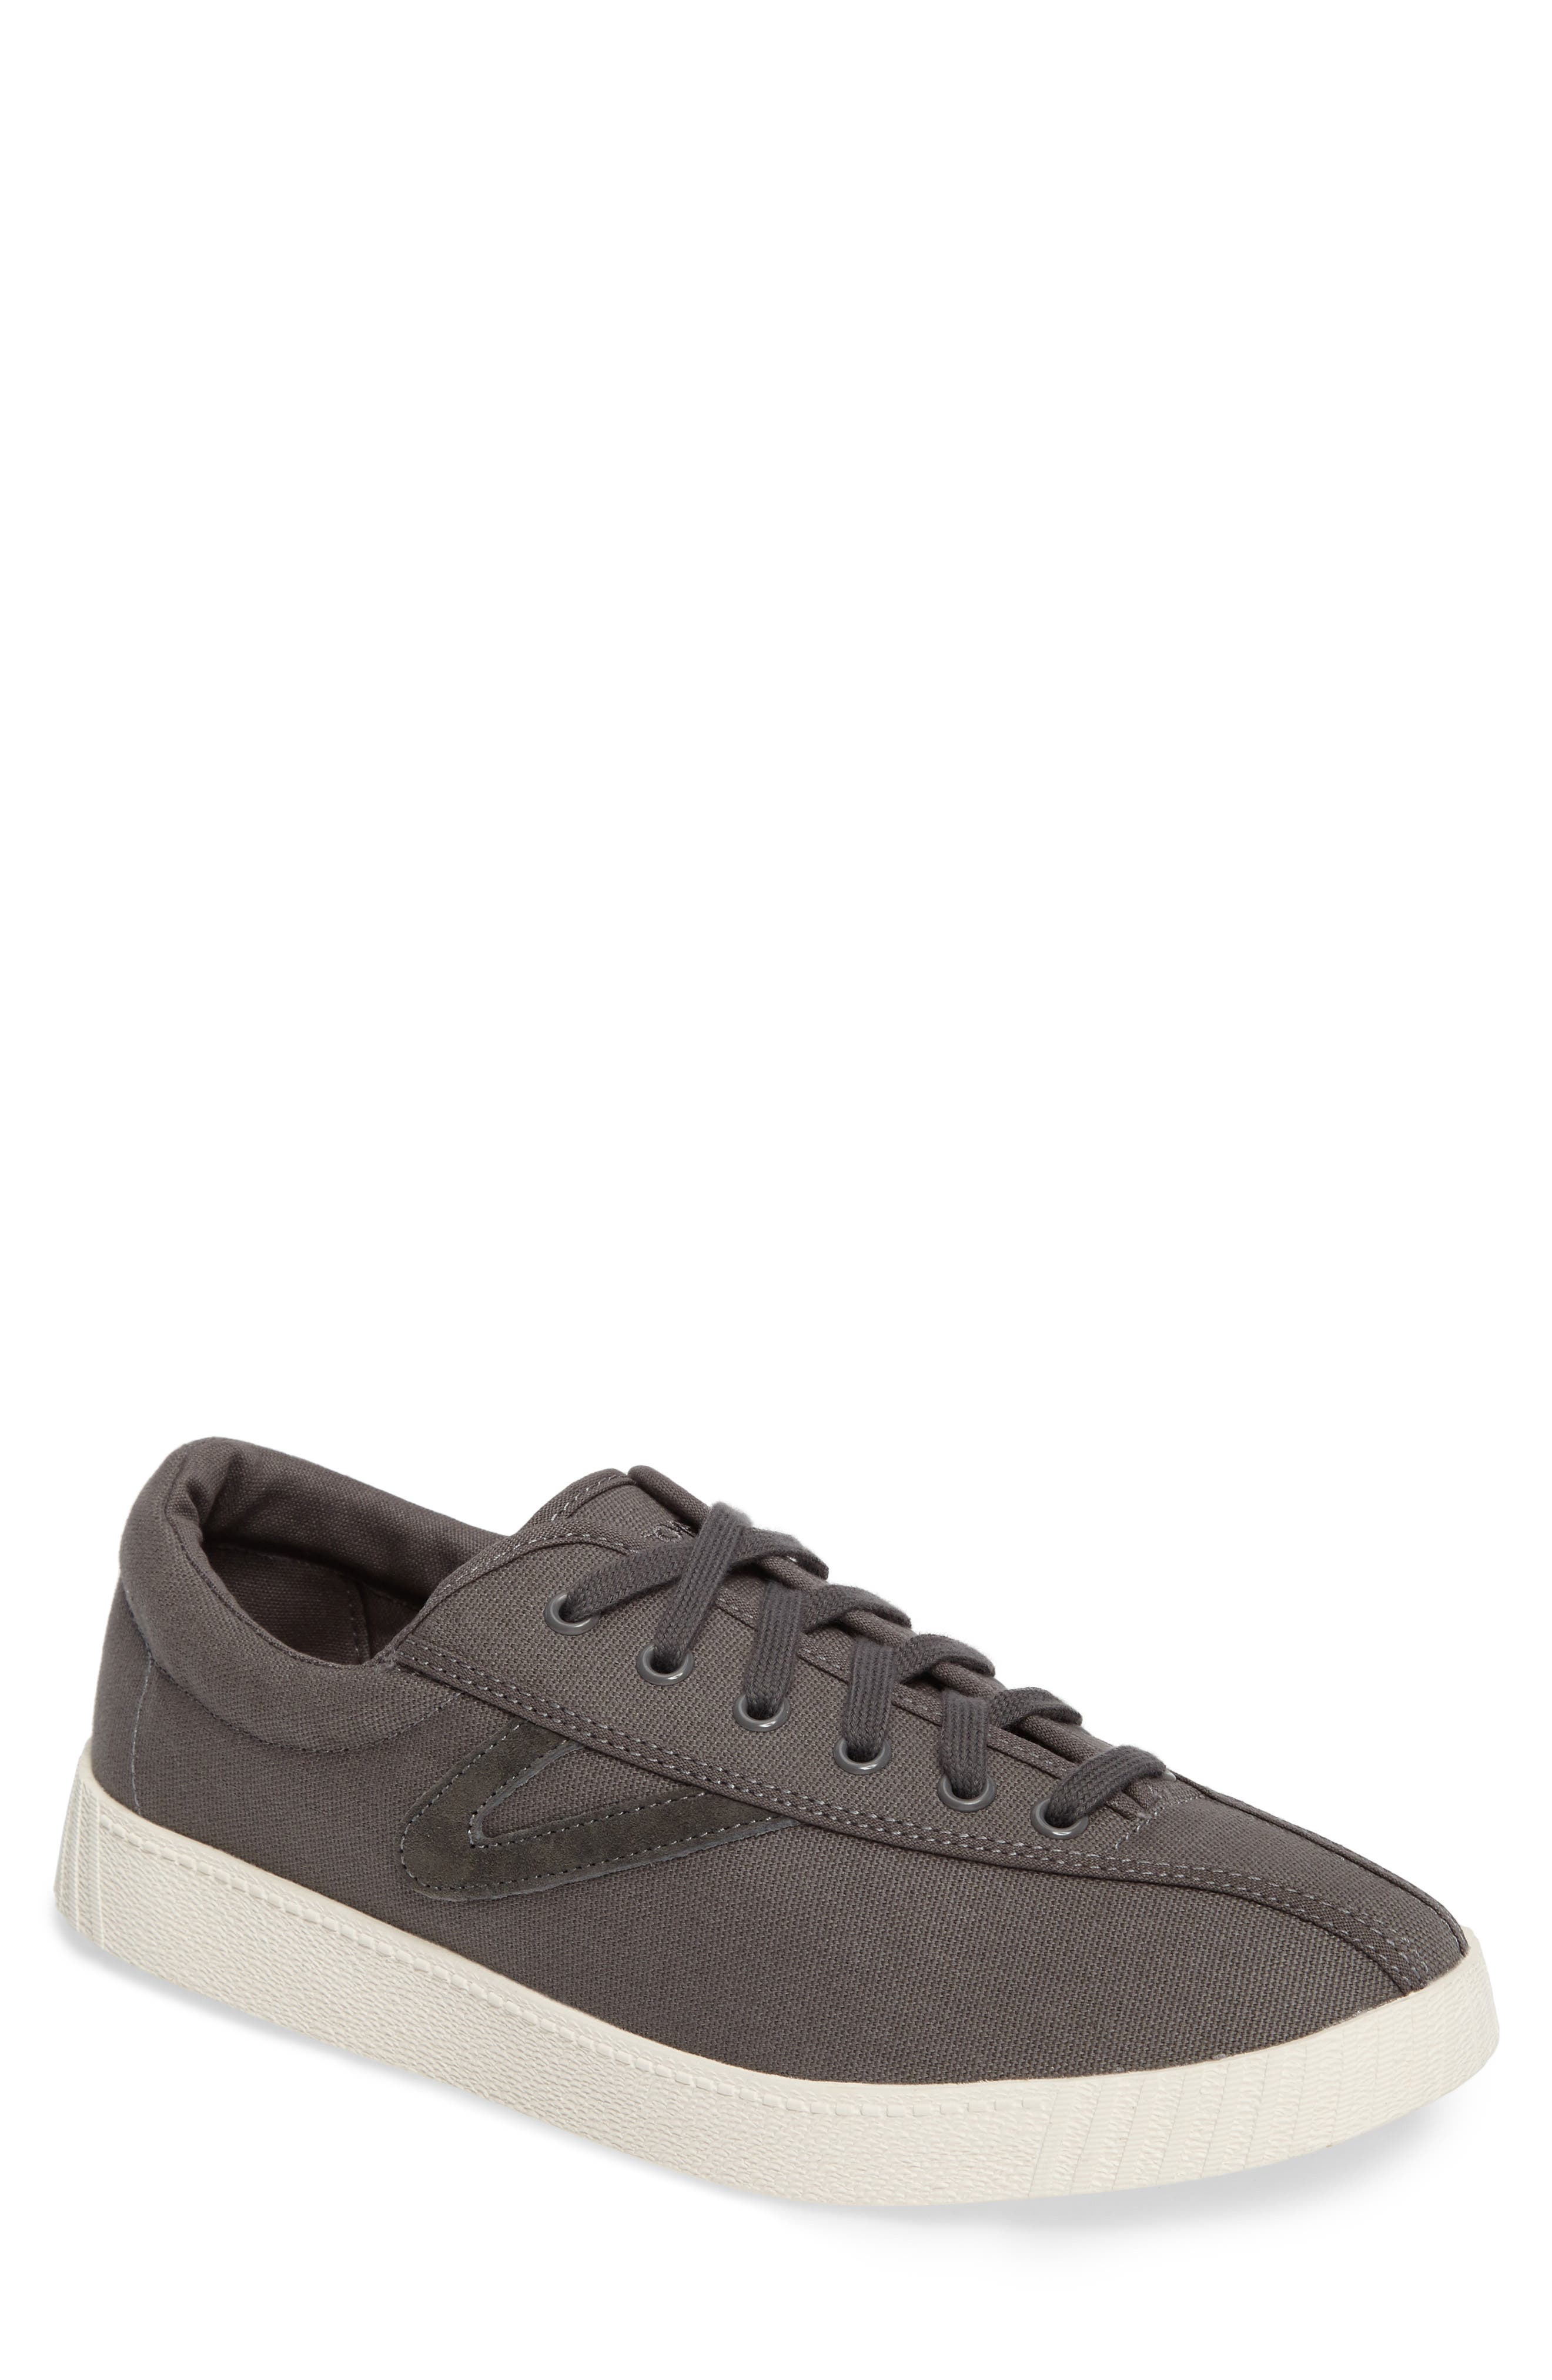 Tretorn Nylite Plus Sneaker (Men)